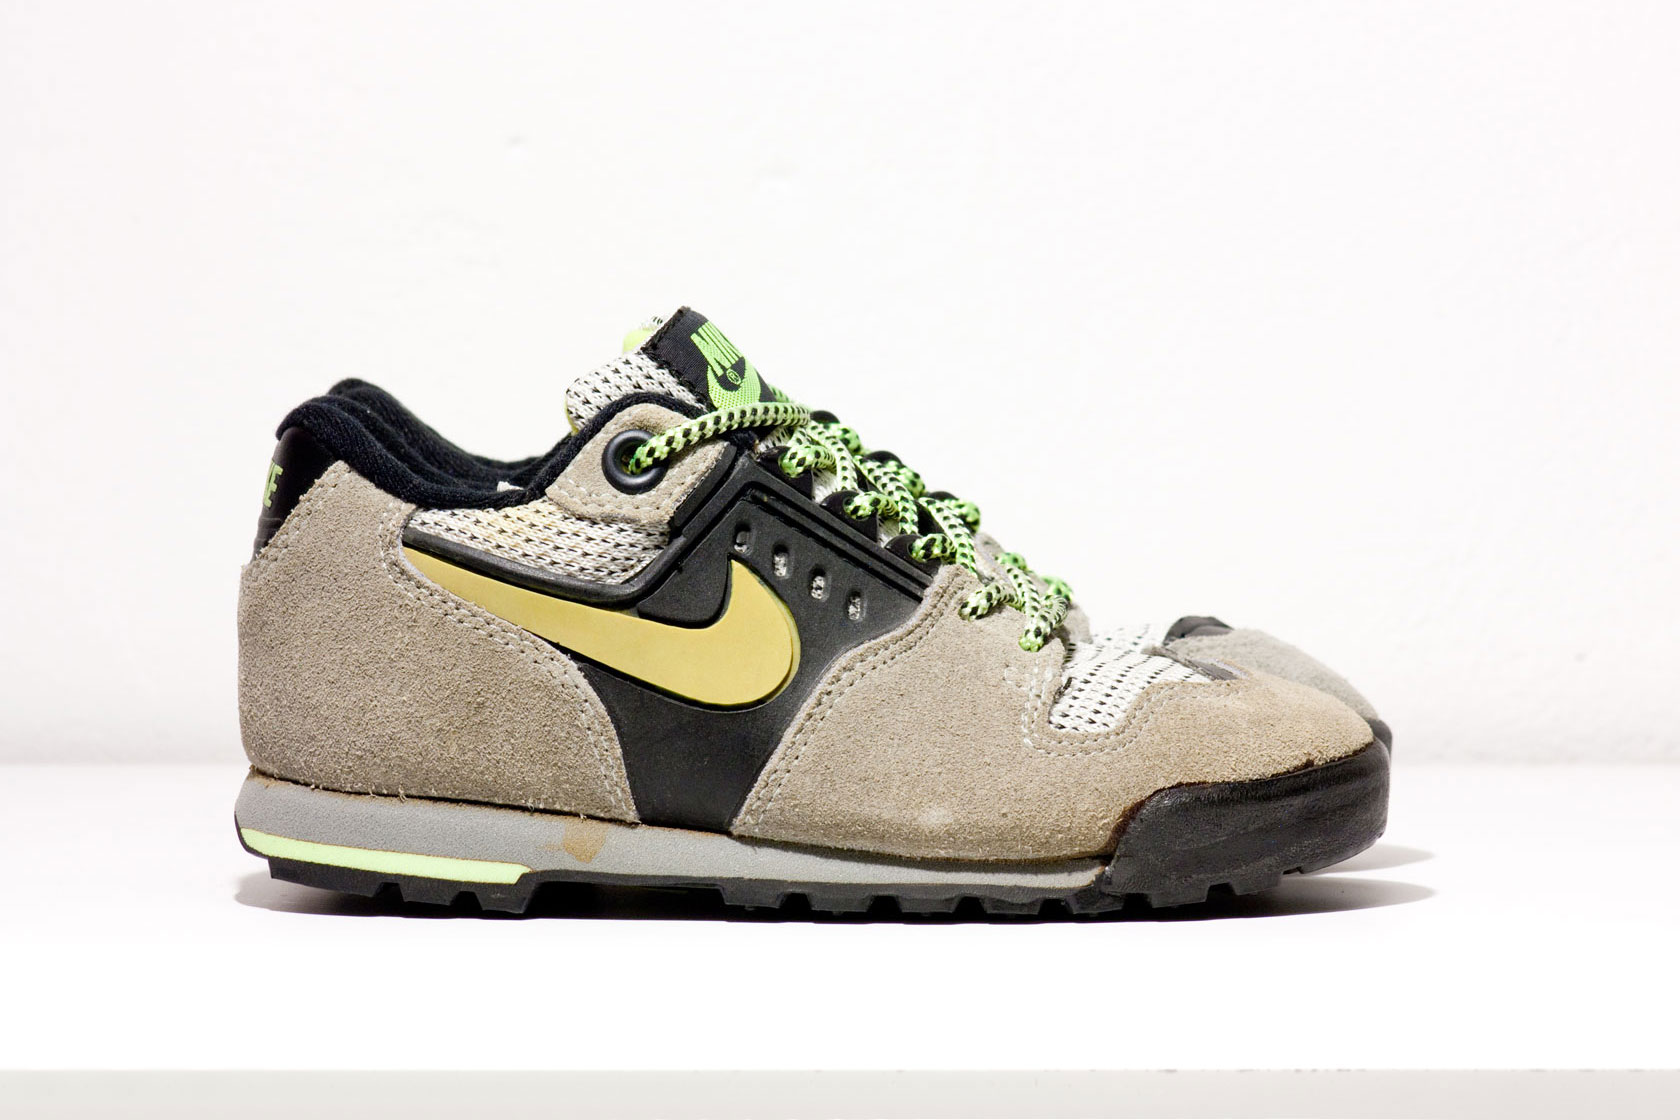 super popular 1adc7 5ecff WORN TO BE WILD » Nike Son of Lava Dome Kids